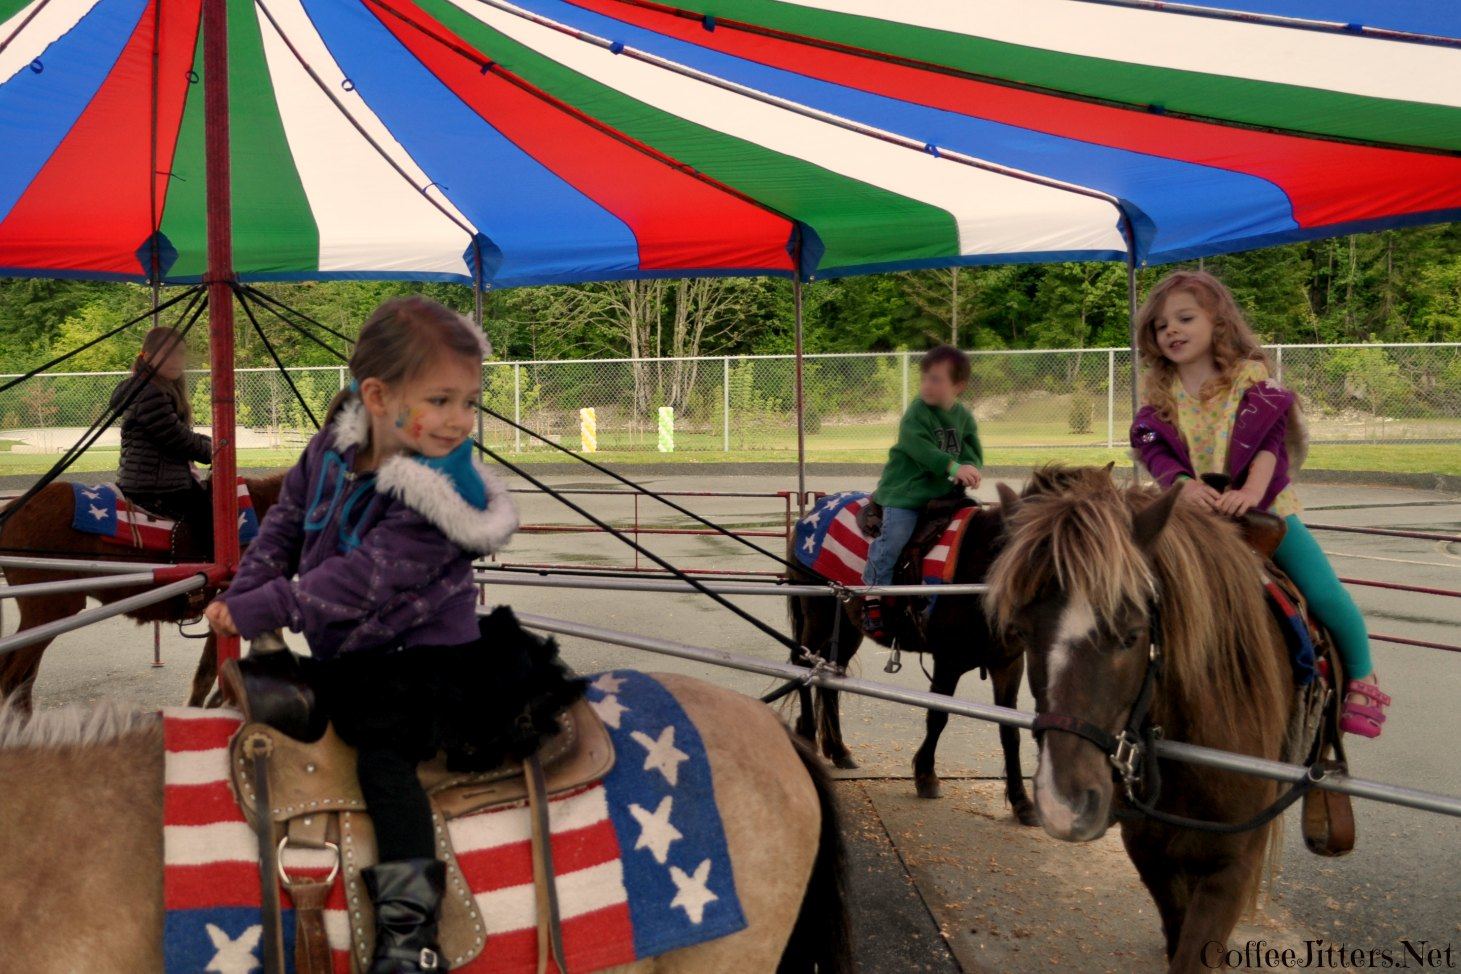 How she got a carnival with pony rides for her 4th birthday